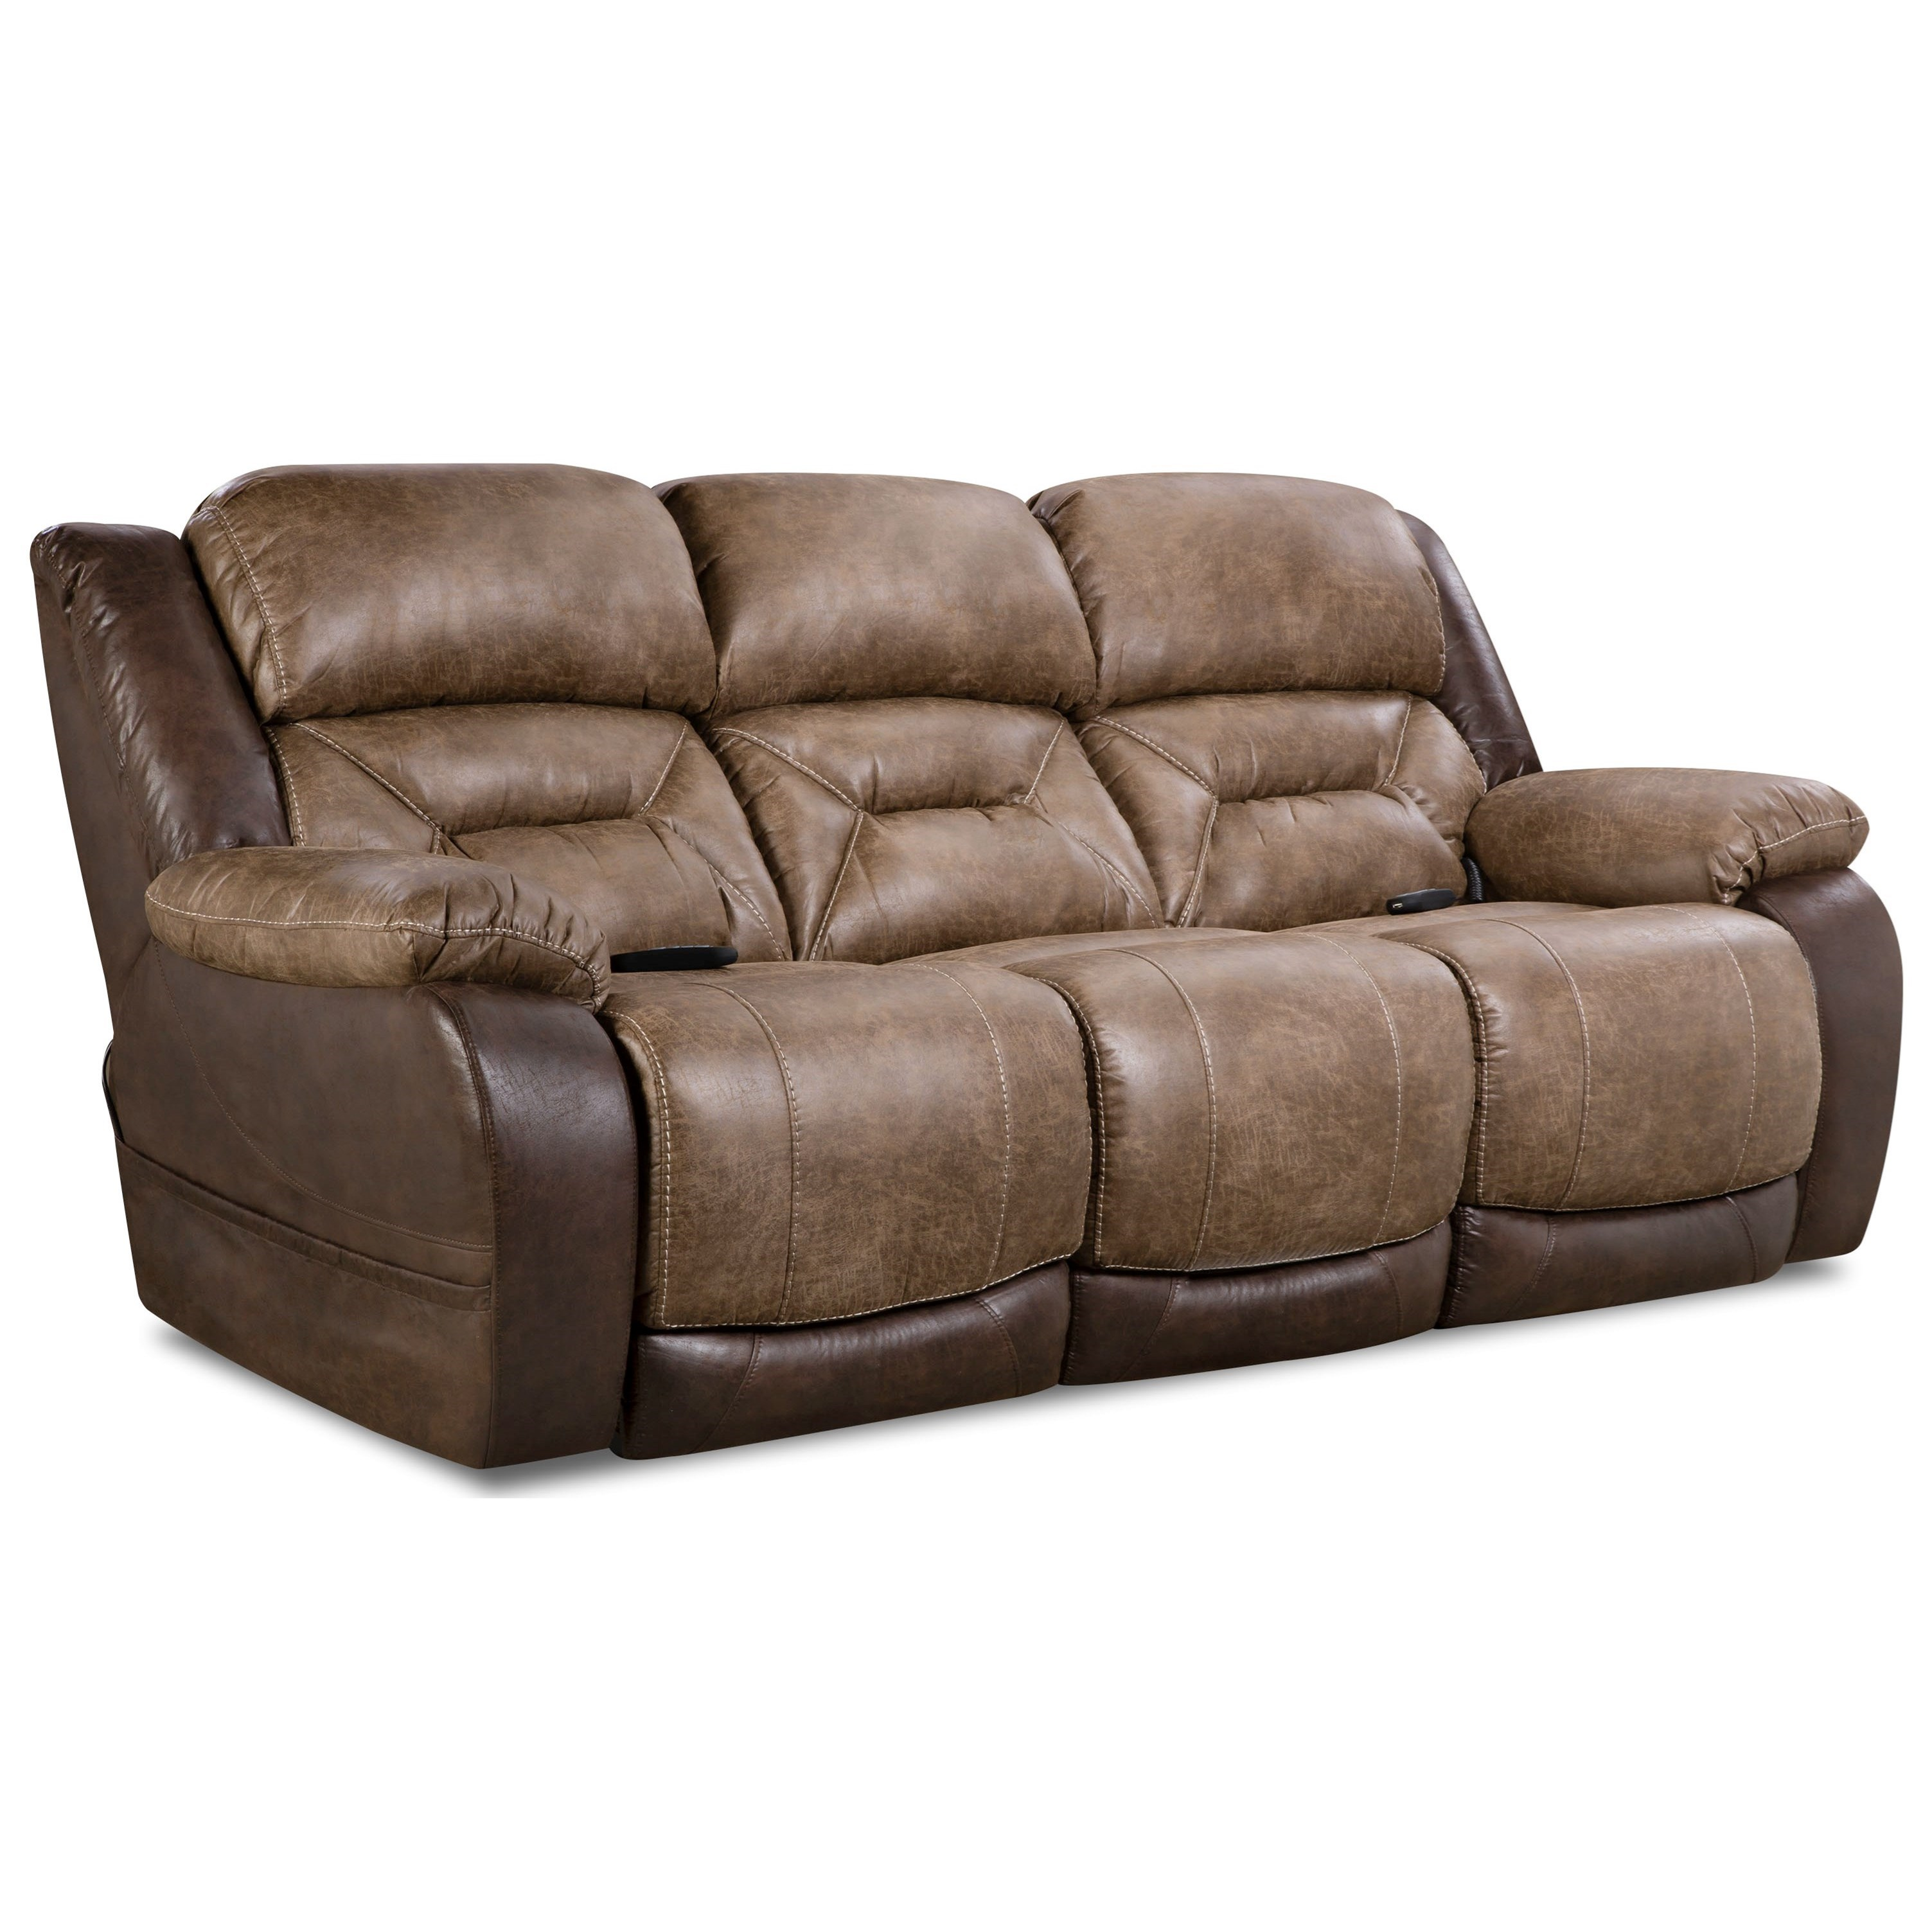 168 Collection Double Reclining Power Sofa at Sadler's Home Furnishings